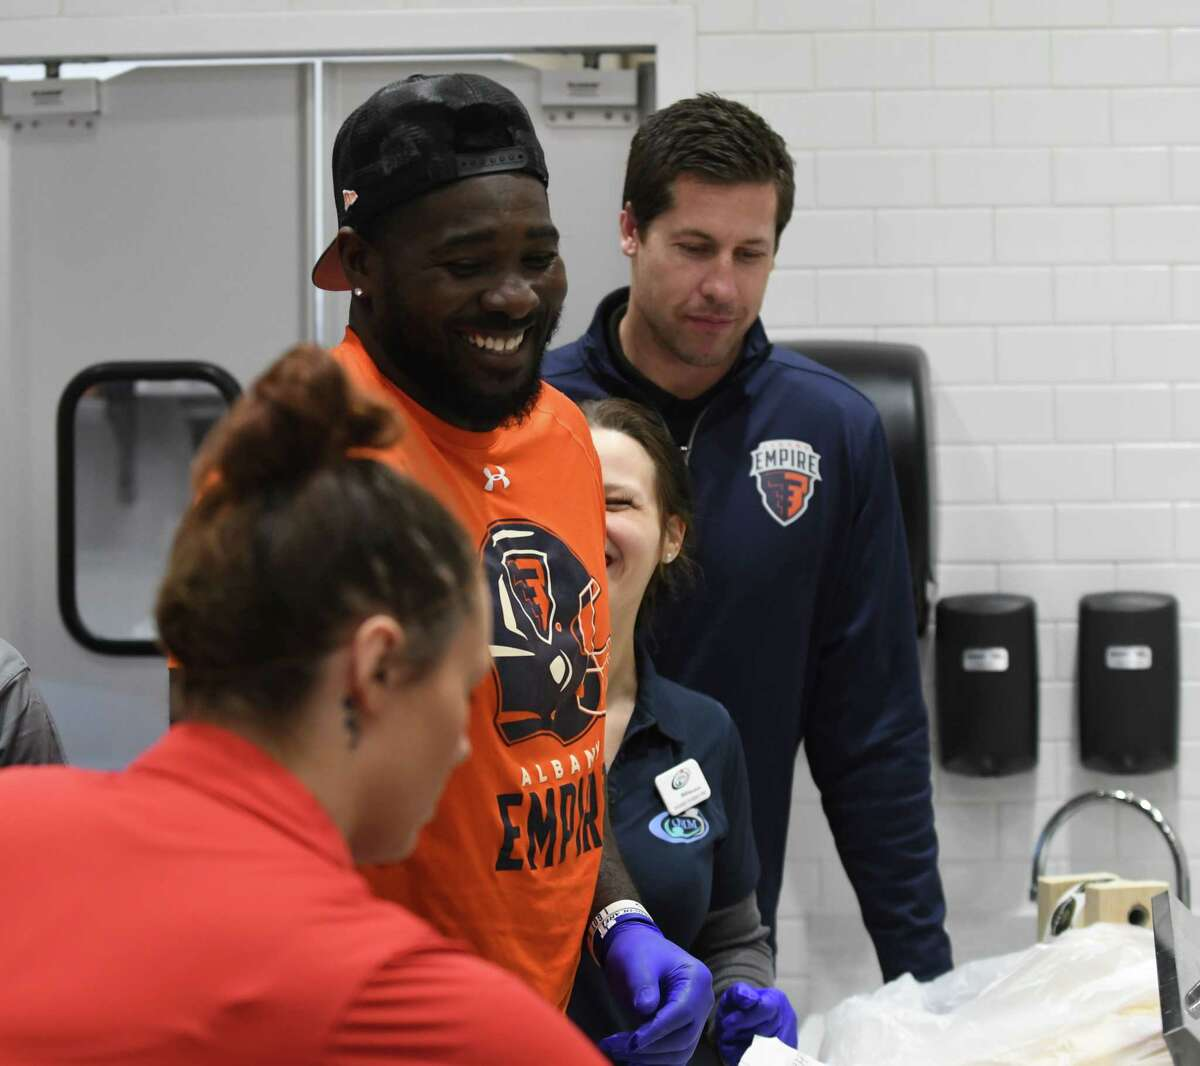 Albany Empire players Joe Sykes, center, and Tommy Grady, right, from the Albany Empire Arena Football League team, make sandwiches at the new Empire Deli at Albany International Airport on Friday, April 5, 2019, in Colonie, N.Y. The deli is located near the security gate on the unsecured side. It is branded in conjunction with the arena football team. (Will Waldron/Times Union)